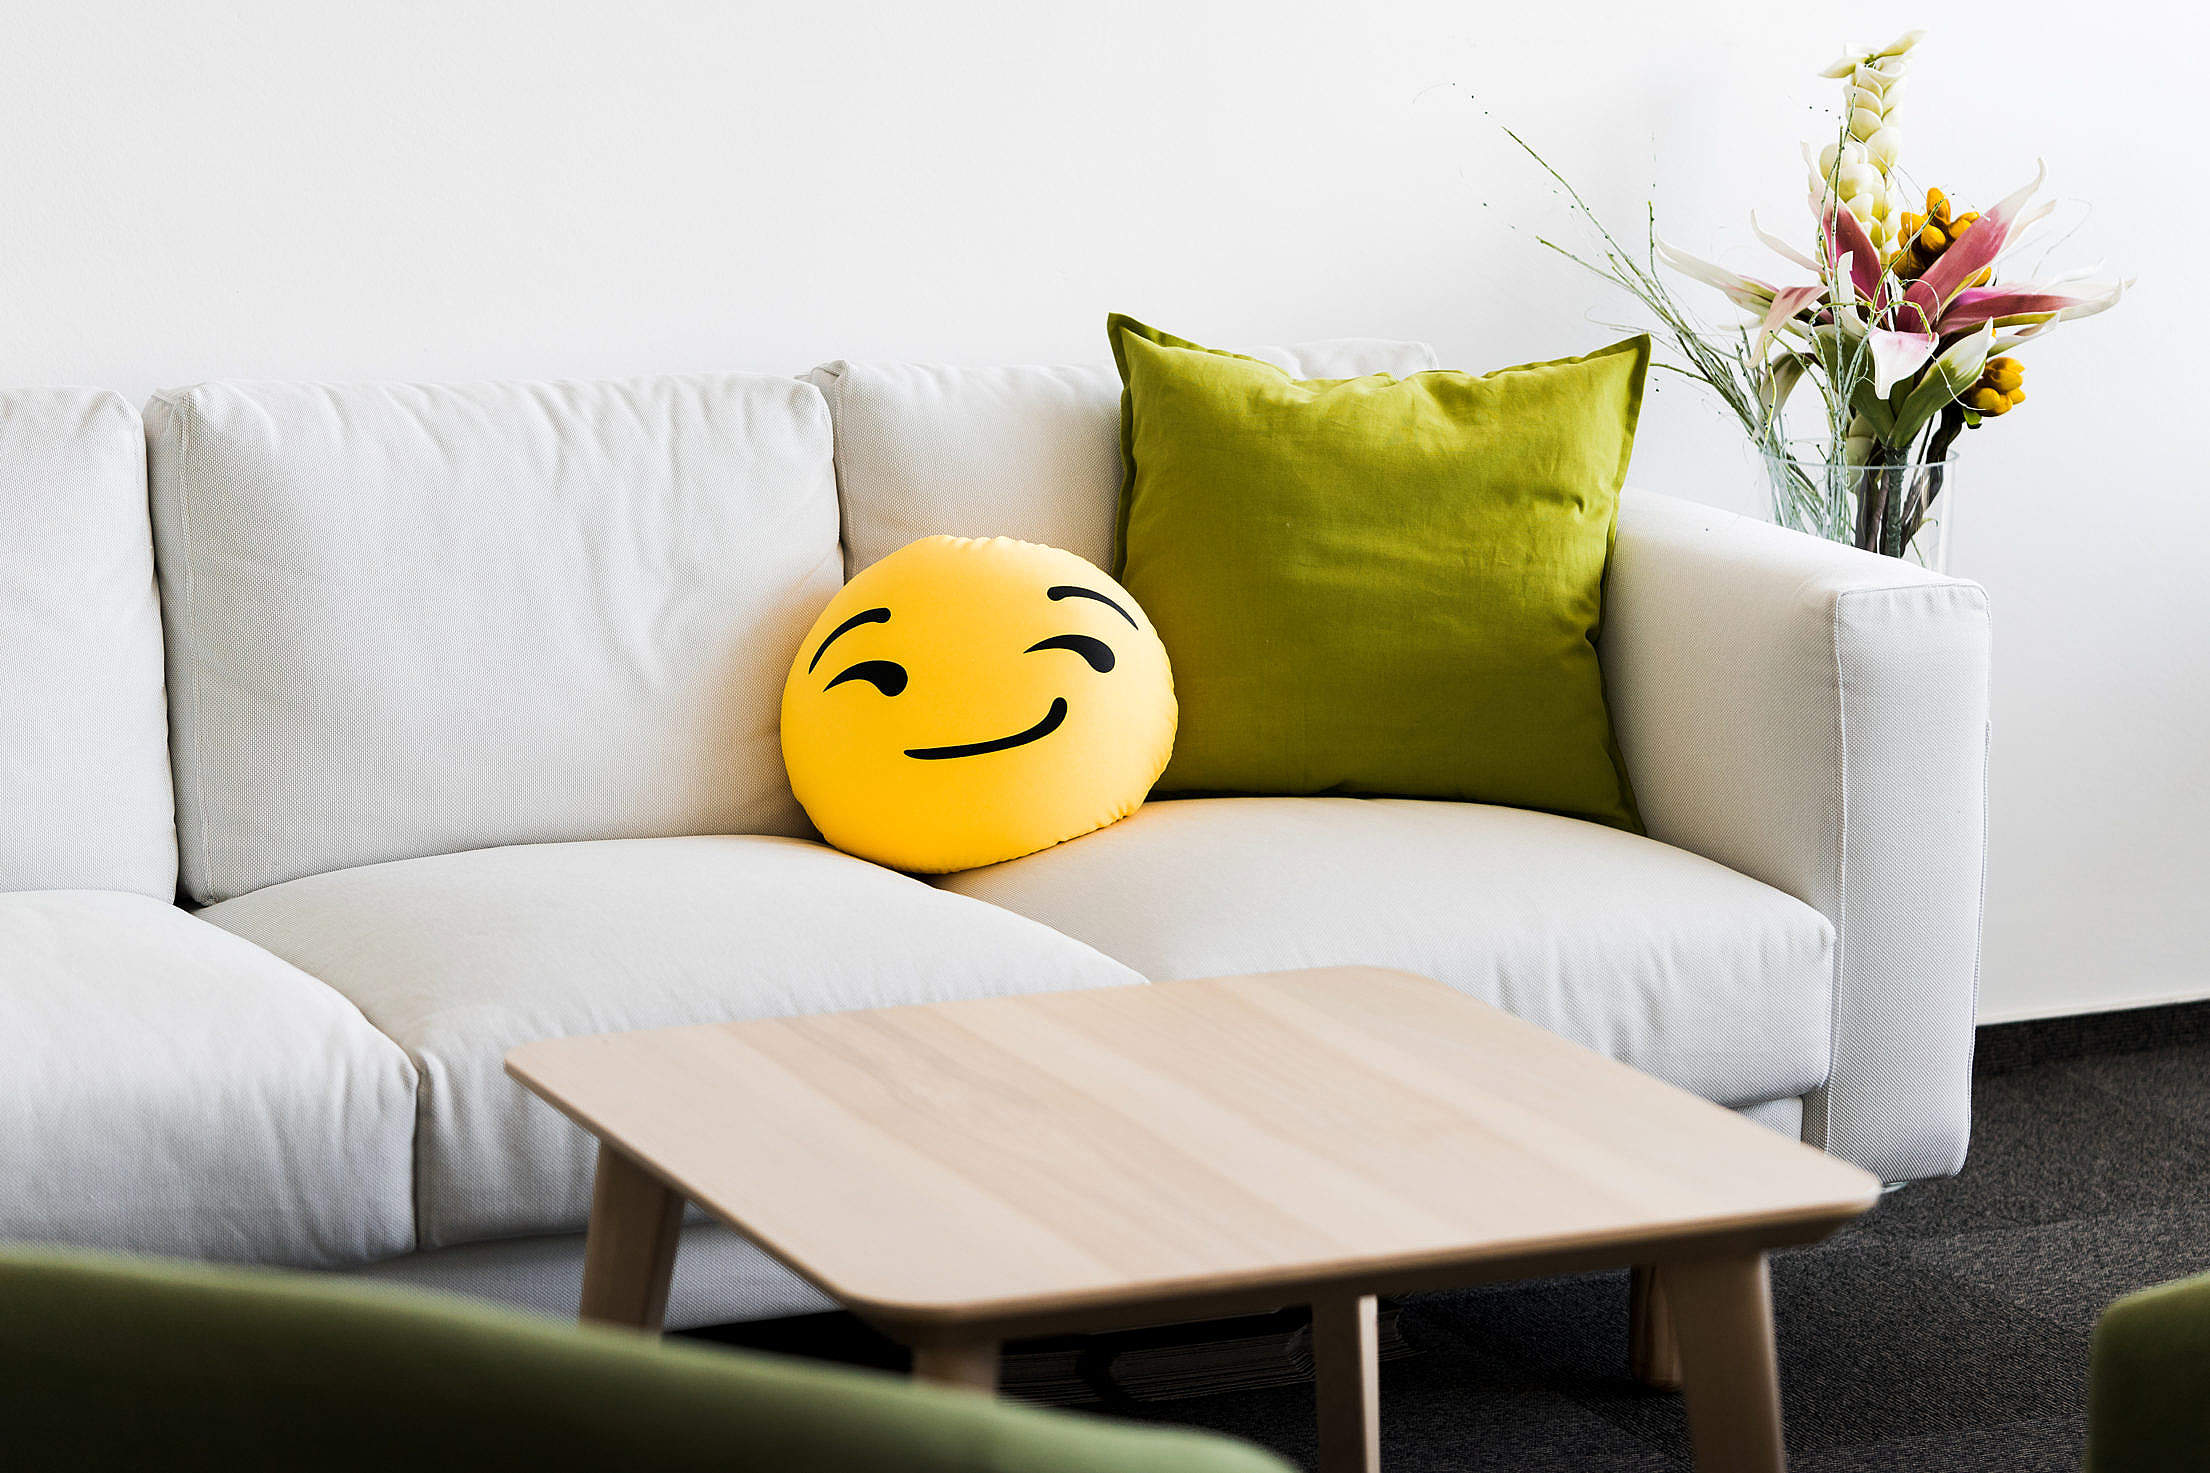 White Office Couch with Funny Emoji Pillow Free Stock Photo